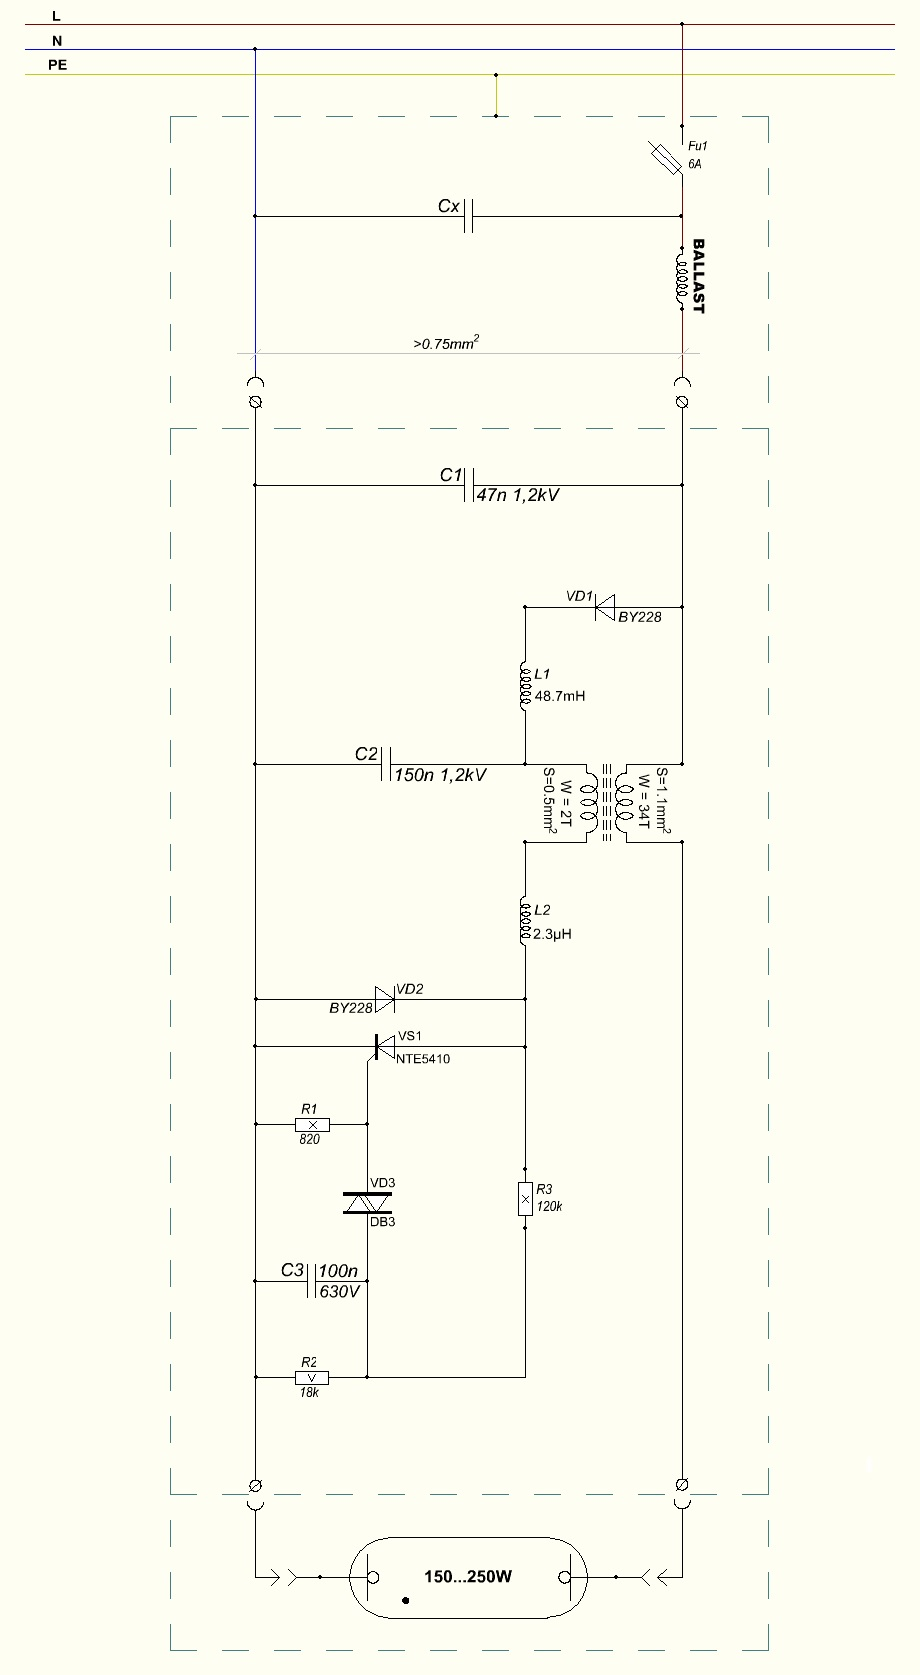 Filewiring Diagram Of Sodium Vapor Discharge Lamp Ignitor Wiring A